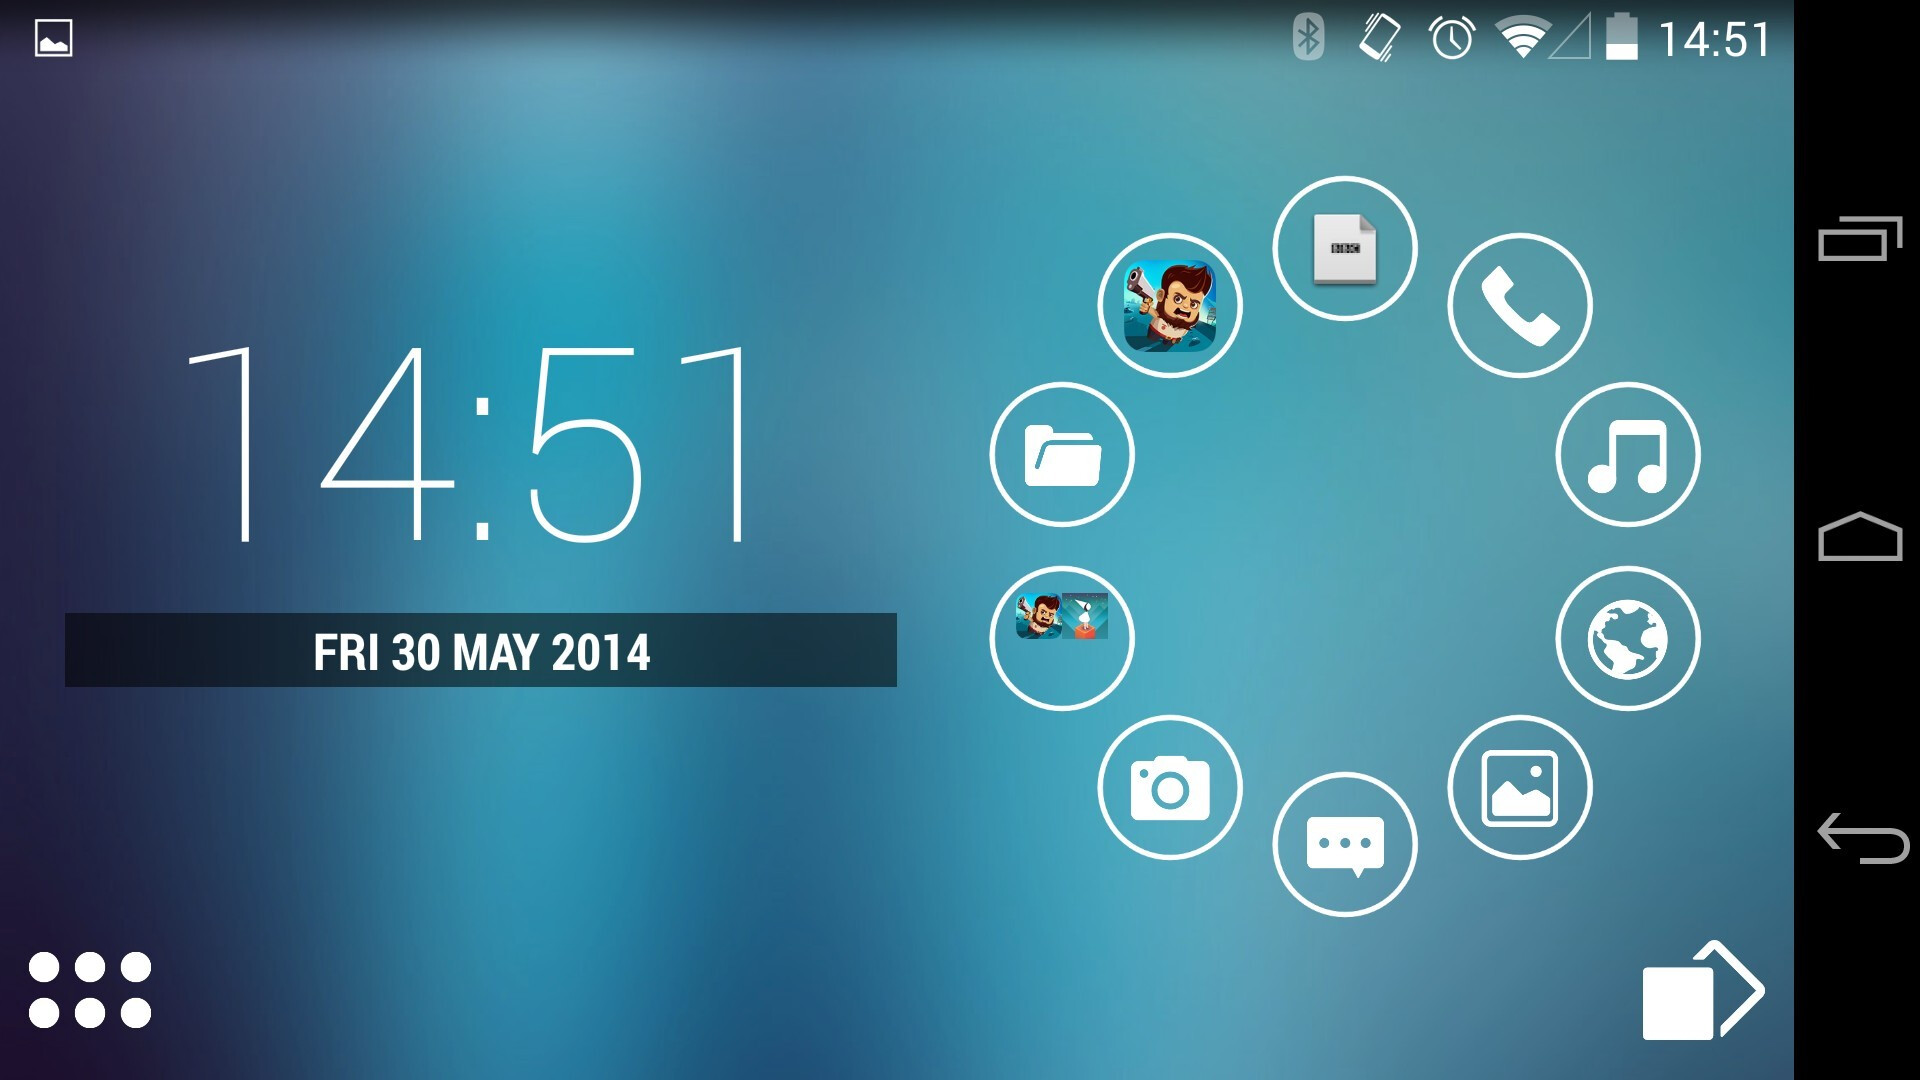 Smart launcher pro 2 review clean energy for Wallpaper home launcher